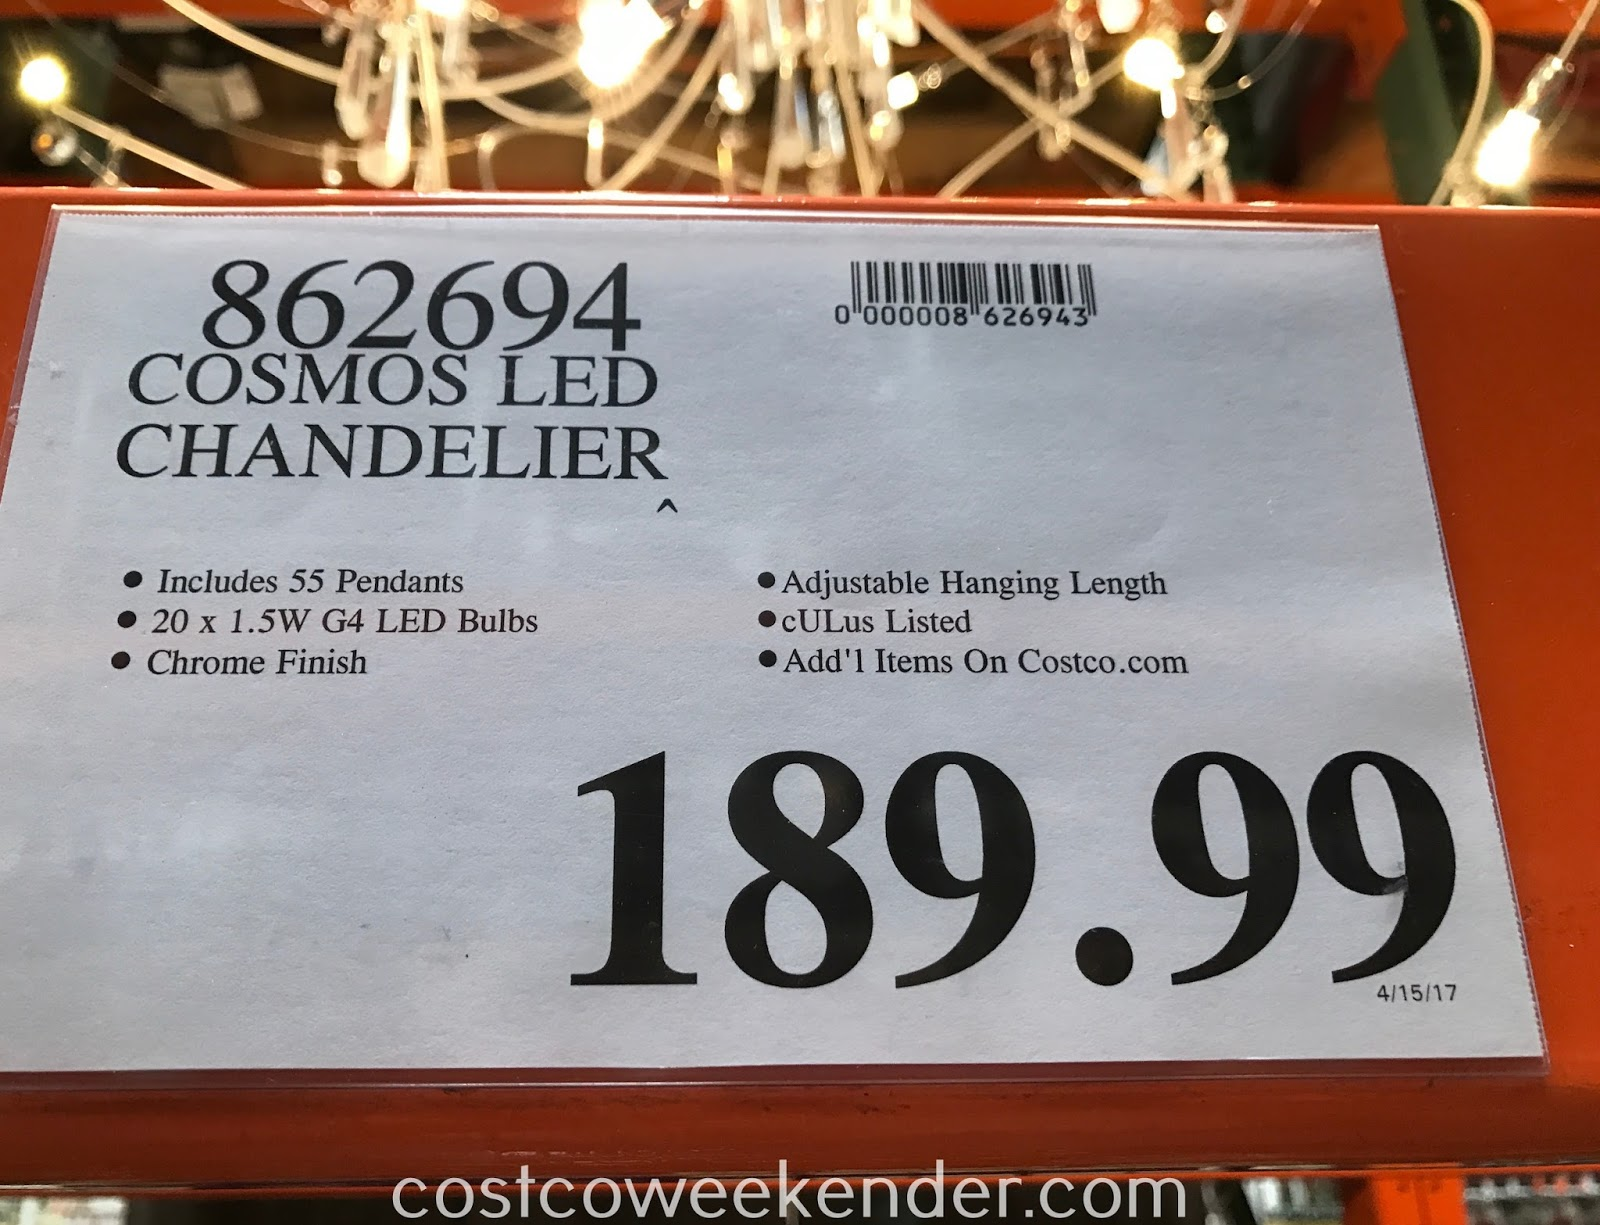 Deal for the Artika Cosmos LED Chandelier at Costco